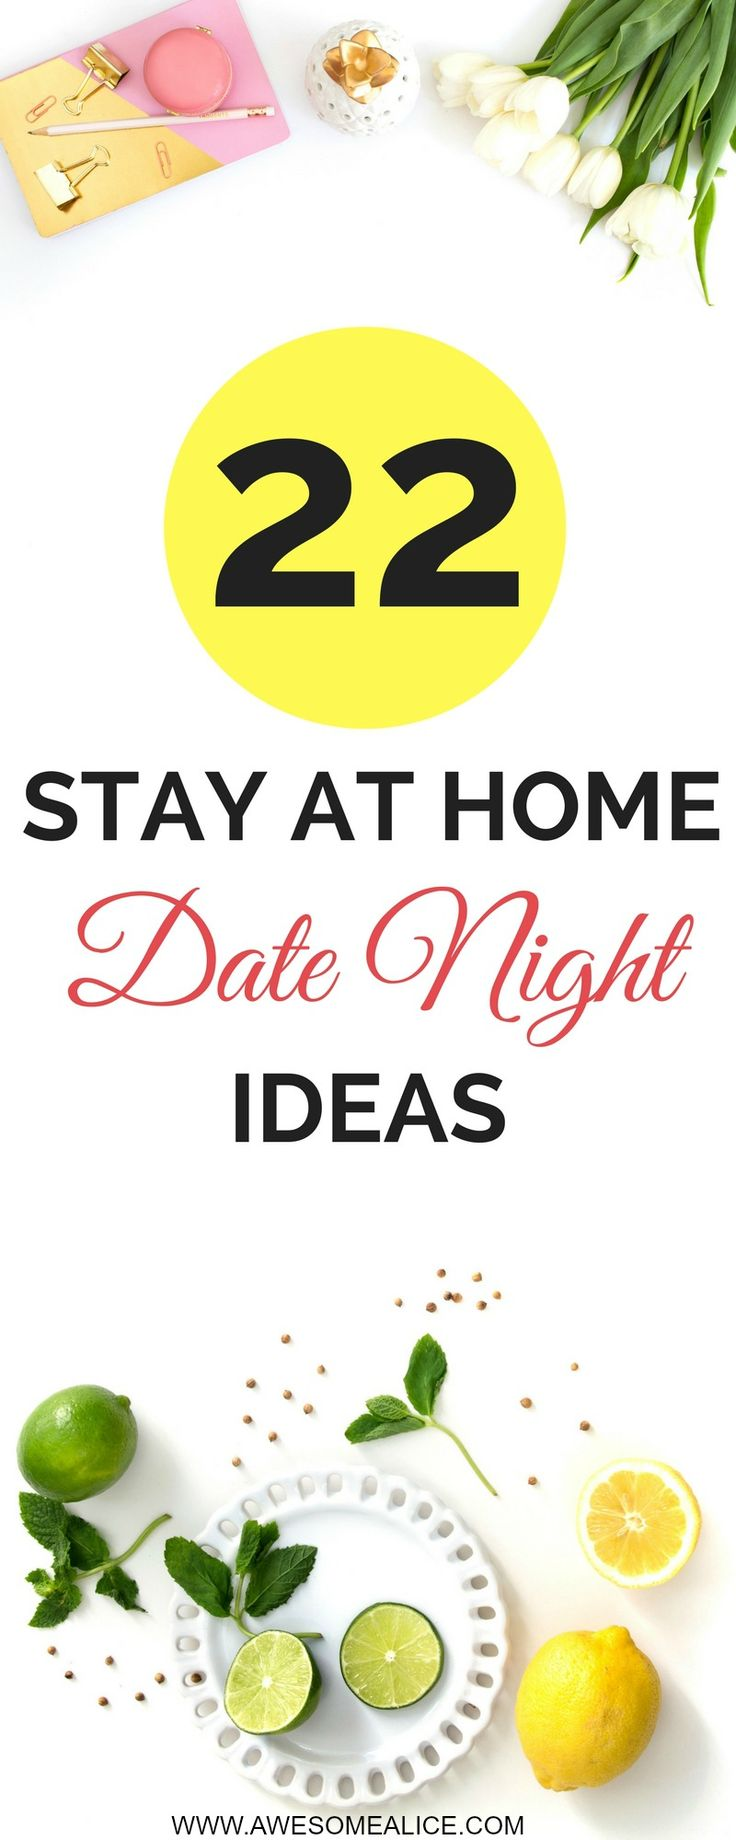 Stay at home date ideas